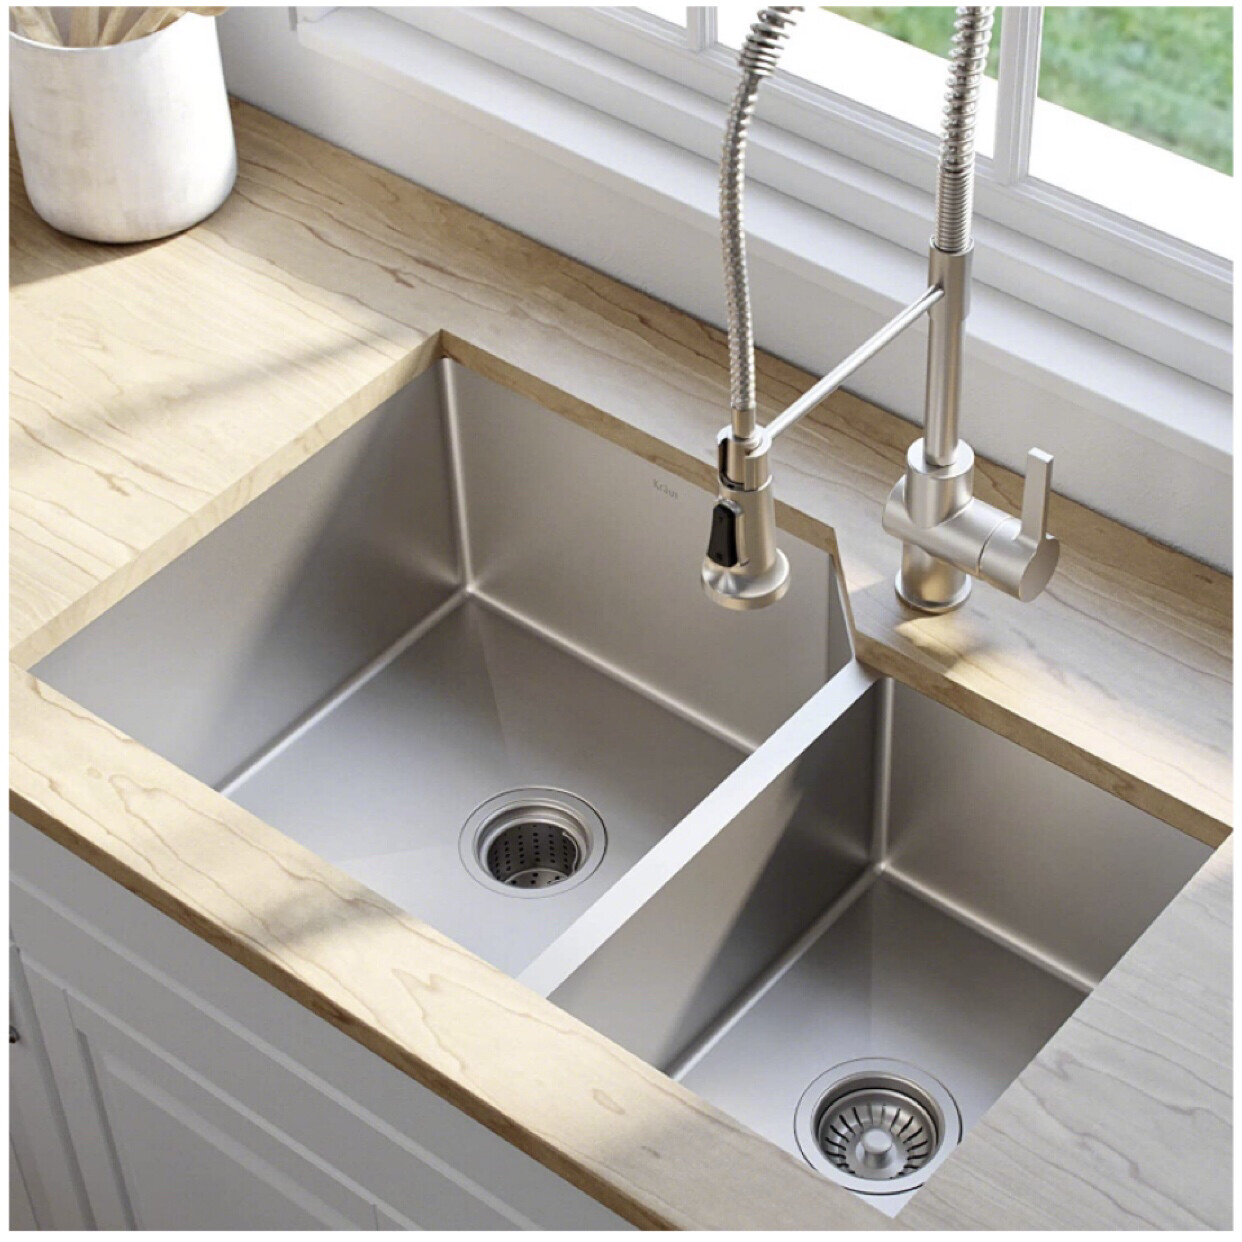 Kraus Khu123-32 Kitchen Sink